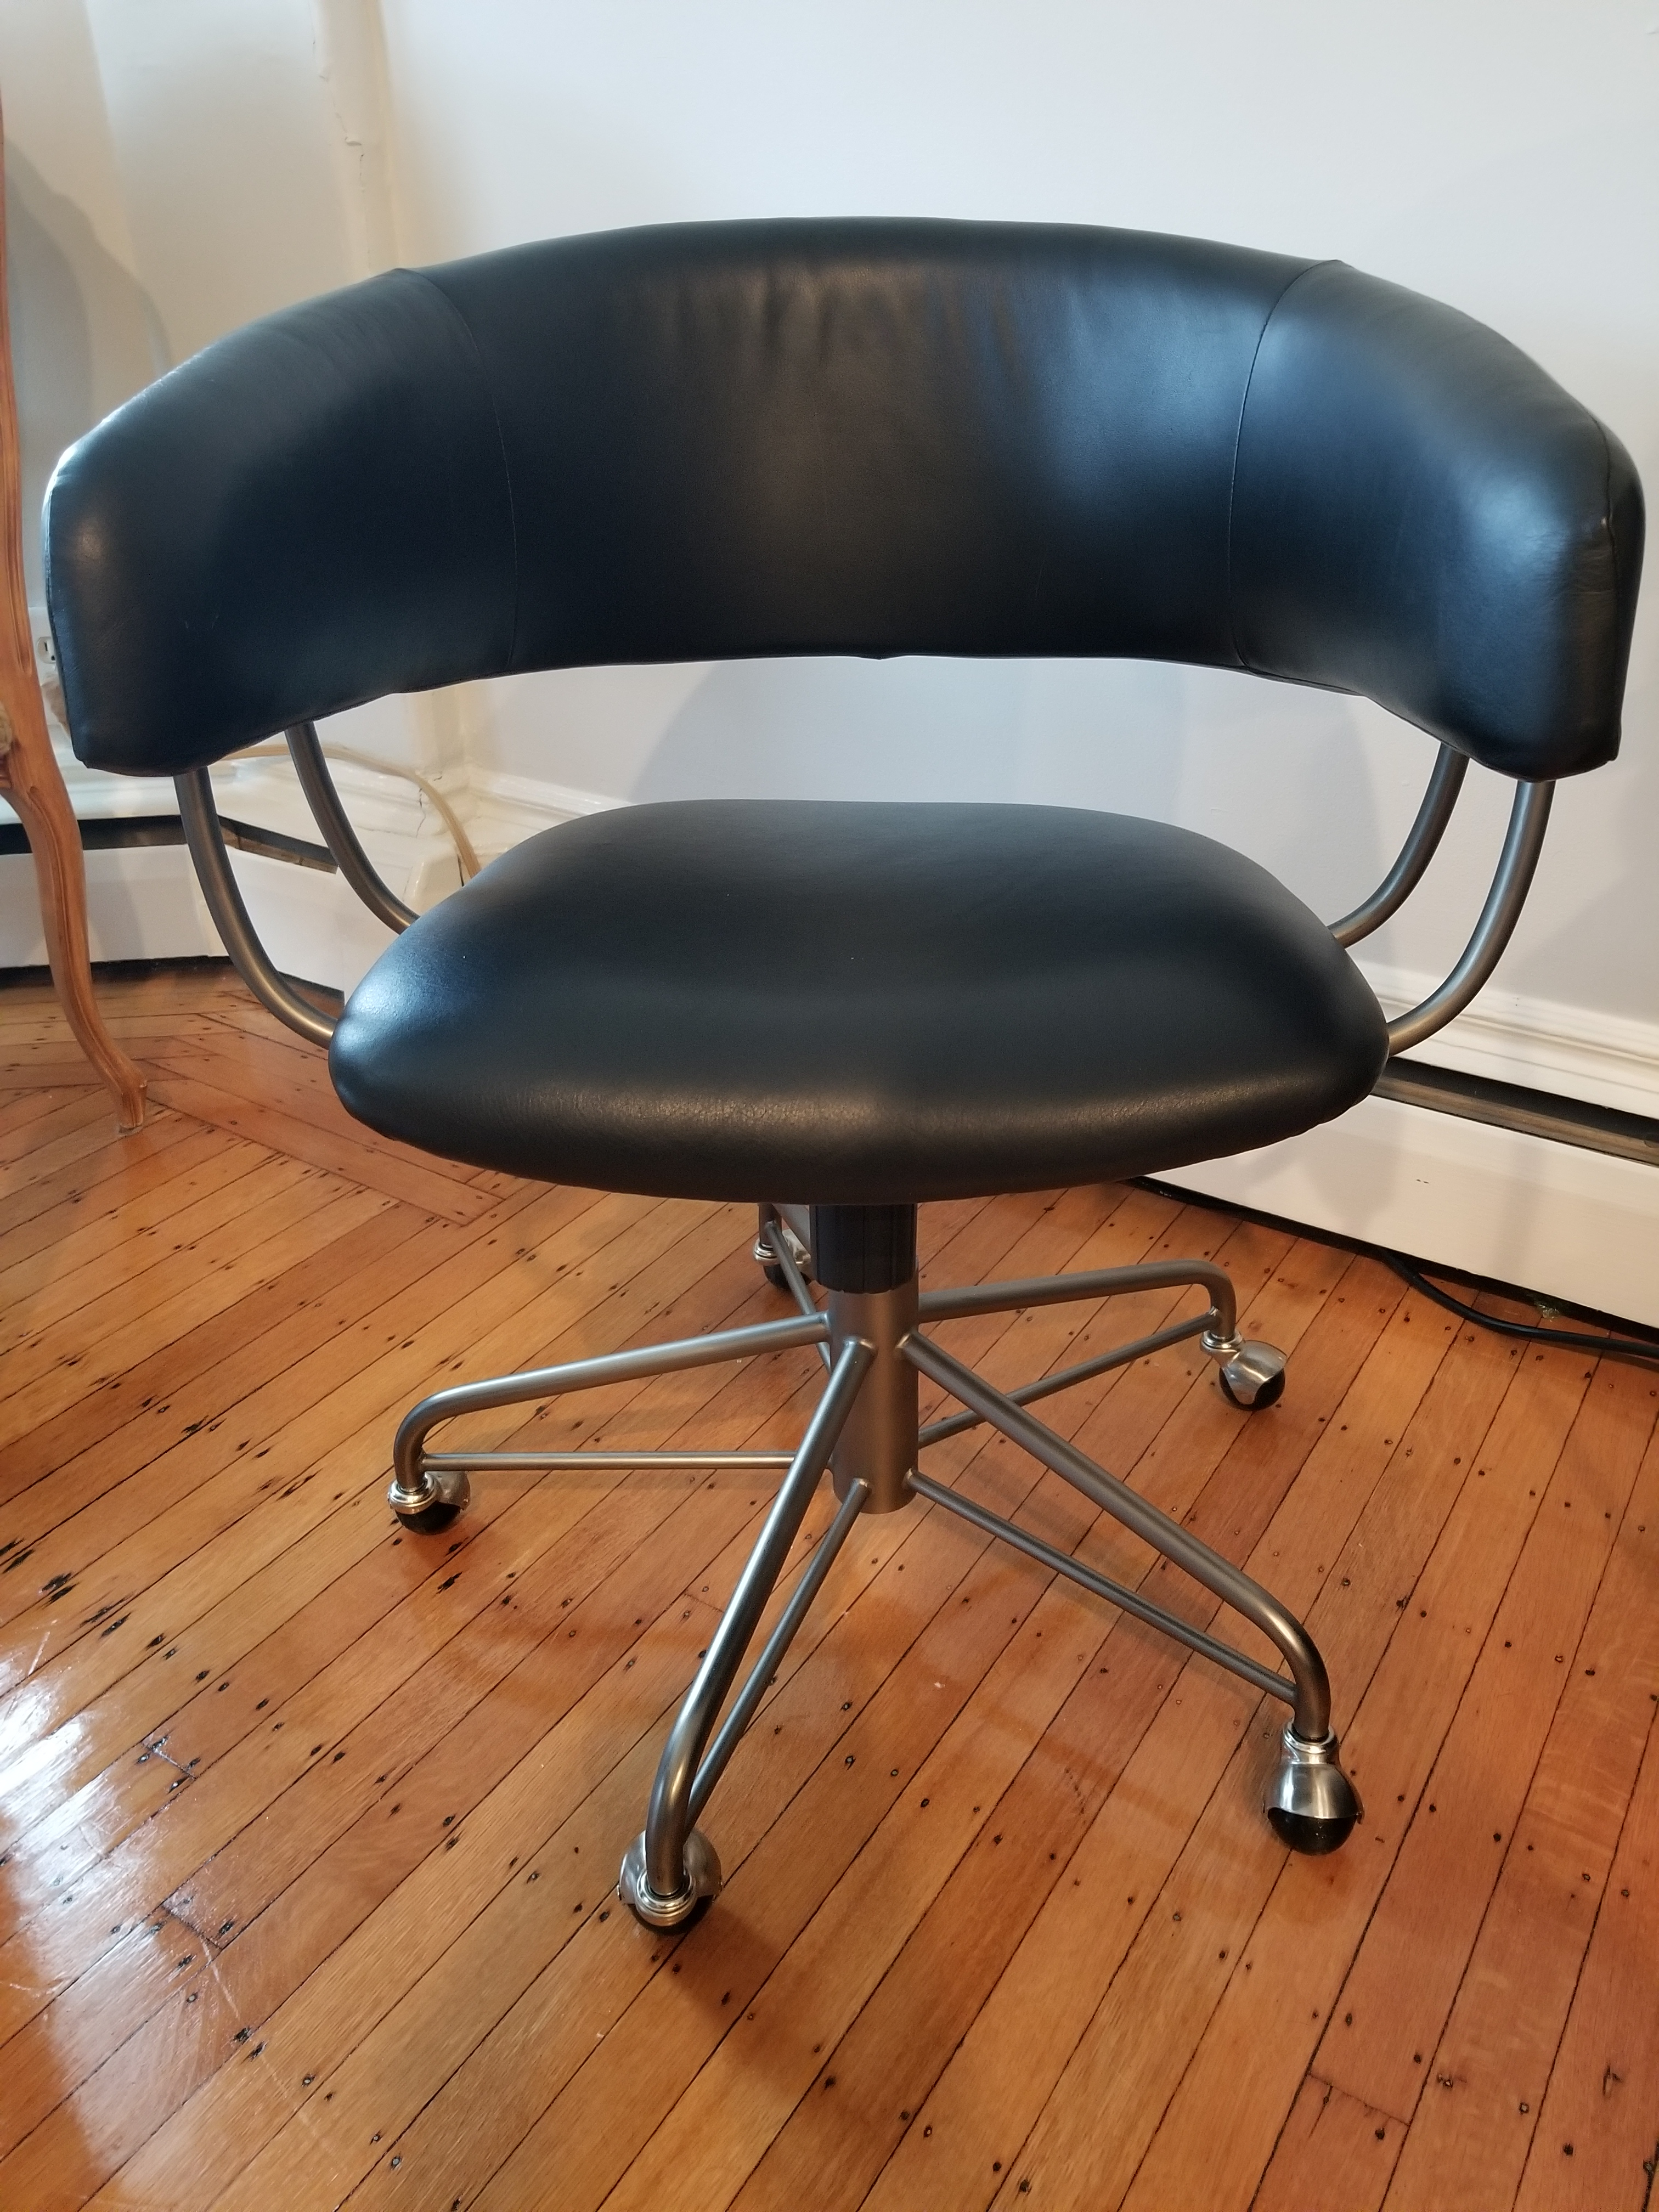 West elm office chair Distressed Brown Leather Modern Leather Office Chair From West Elm Adjustable Seat Height Swivels And Rolls Swivel Chair Design West Elm Halifax Office Chair Chairish